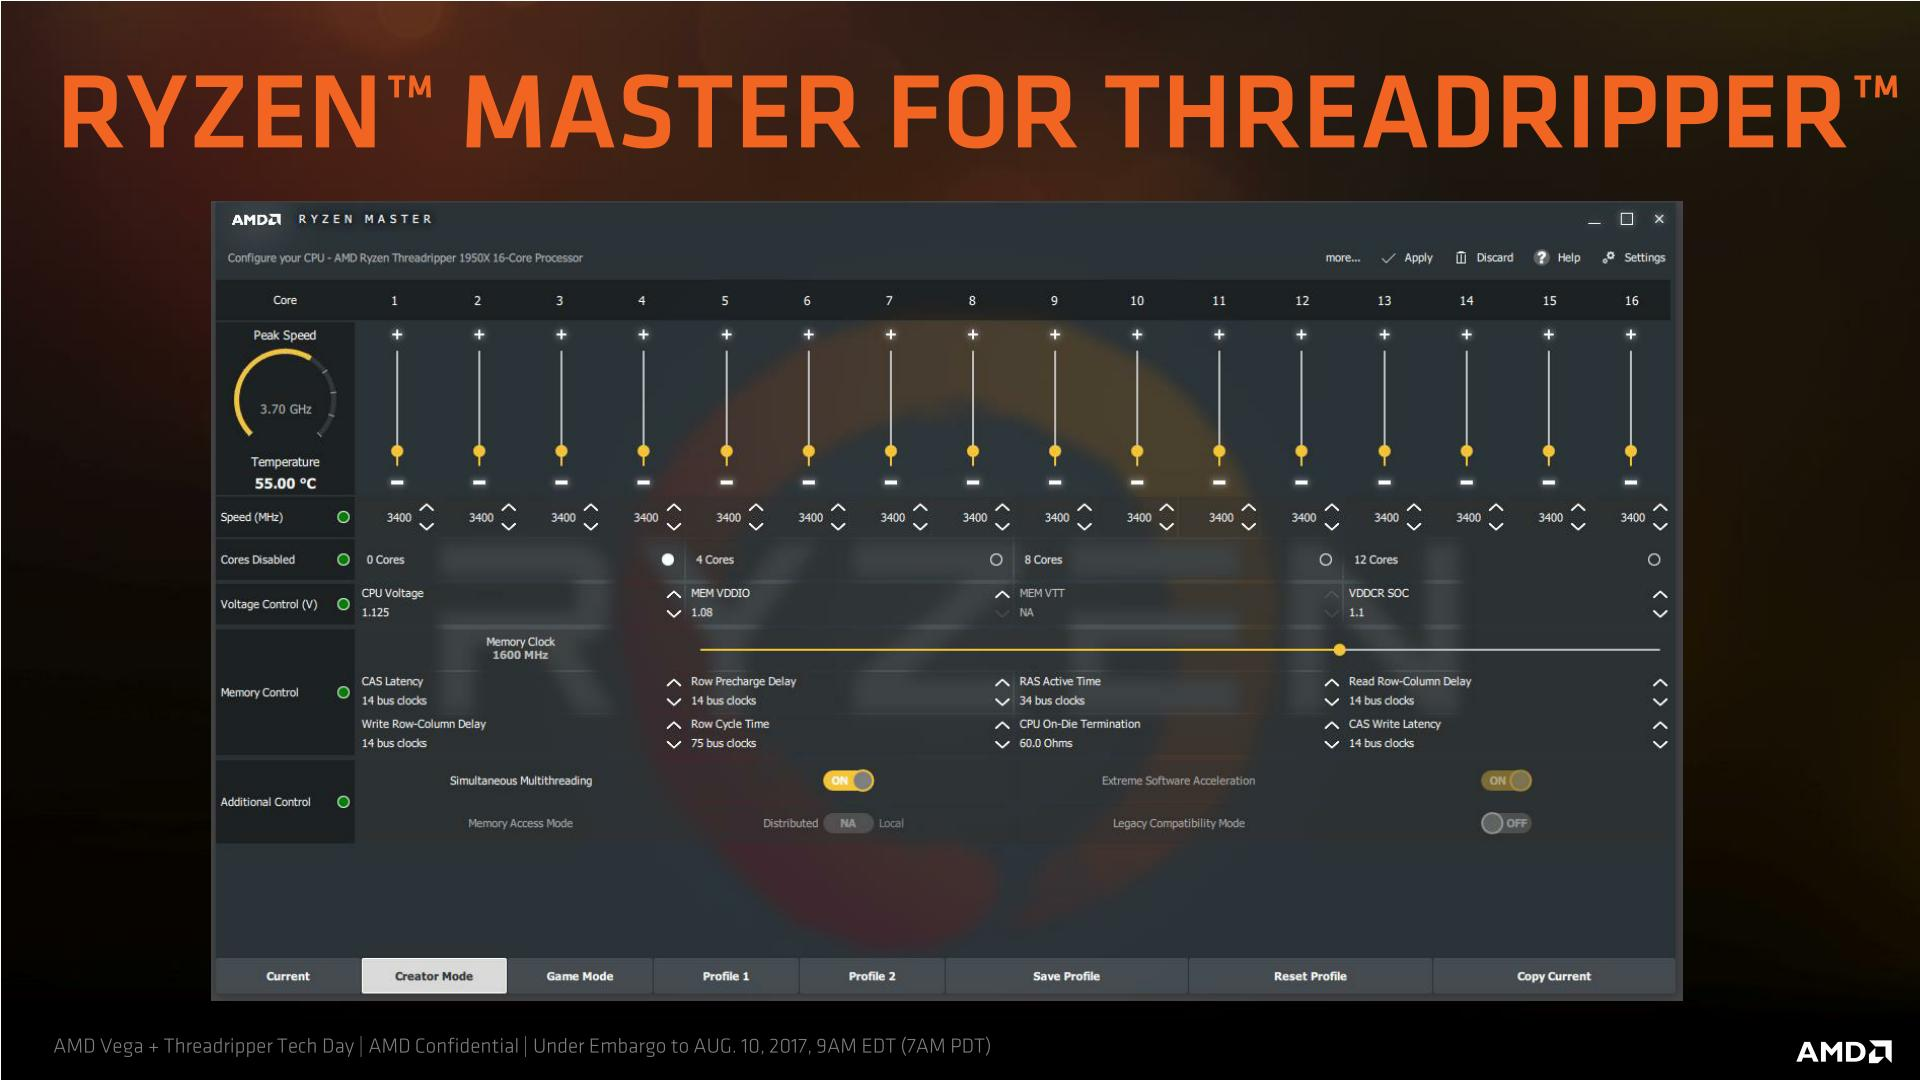 Retesting AMD Ryzen Threadripper's Game Mode: Halving Cores